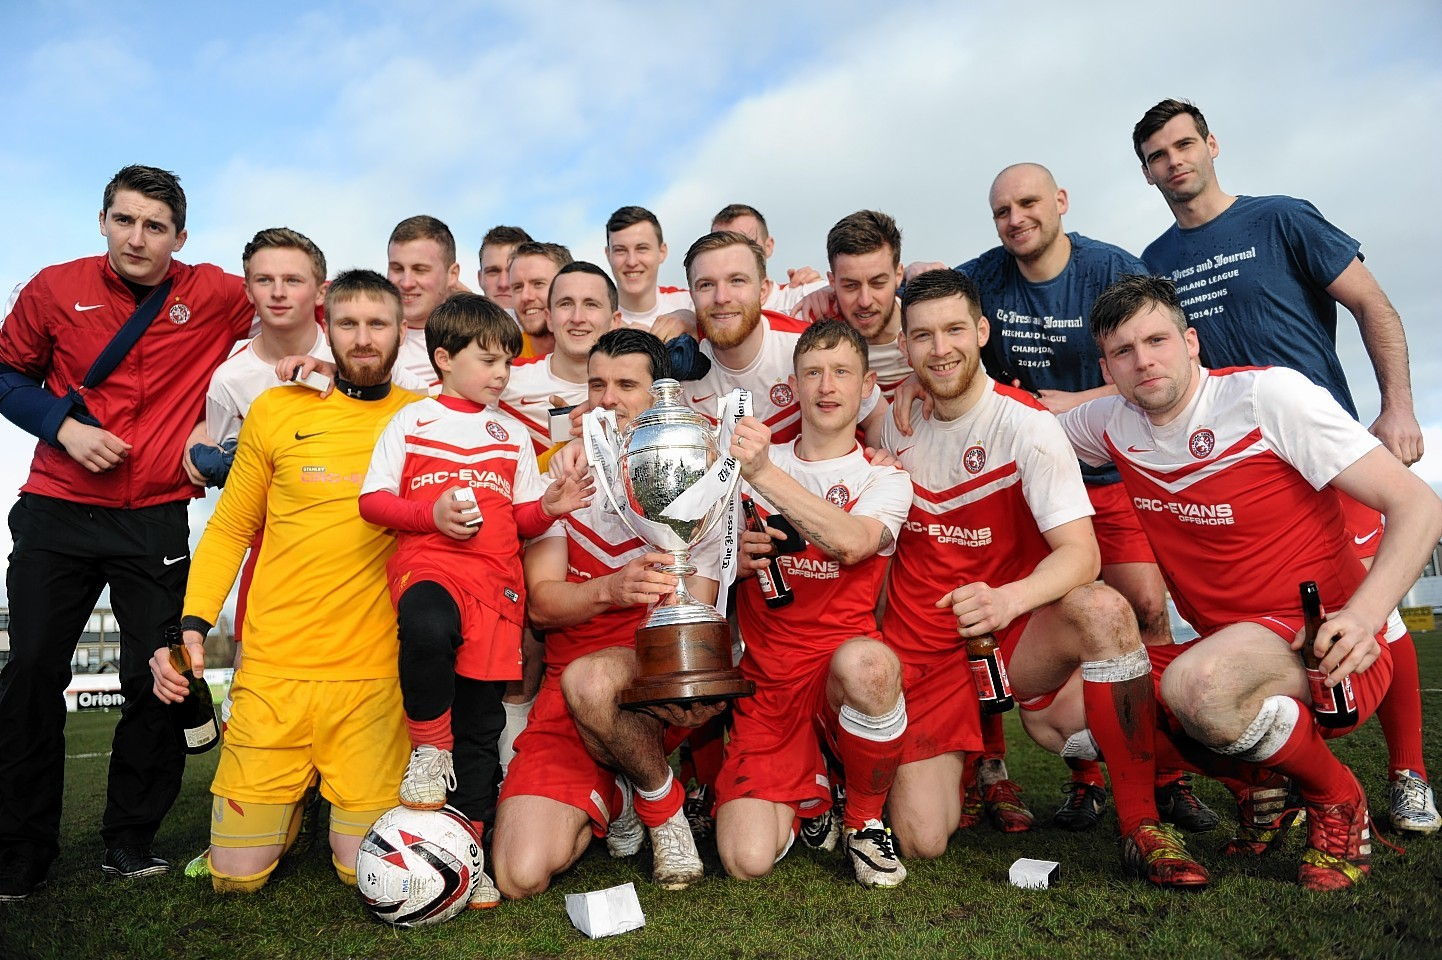 Brora lifted the Highland League title this year - can they retain their crown?